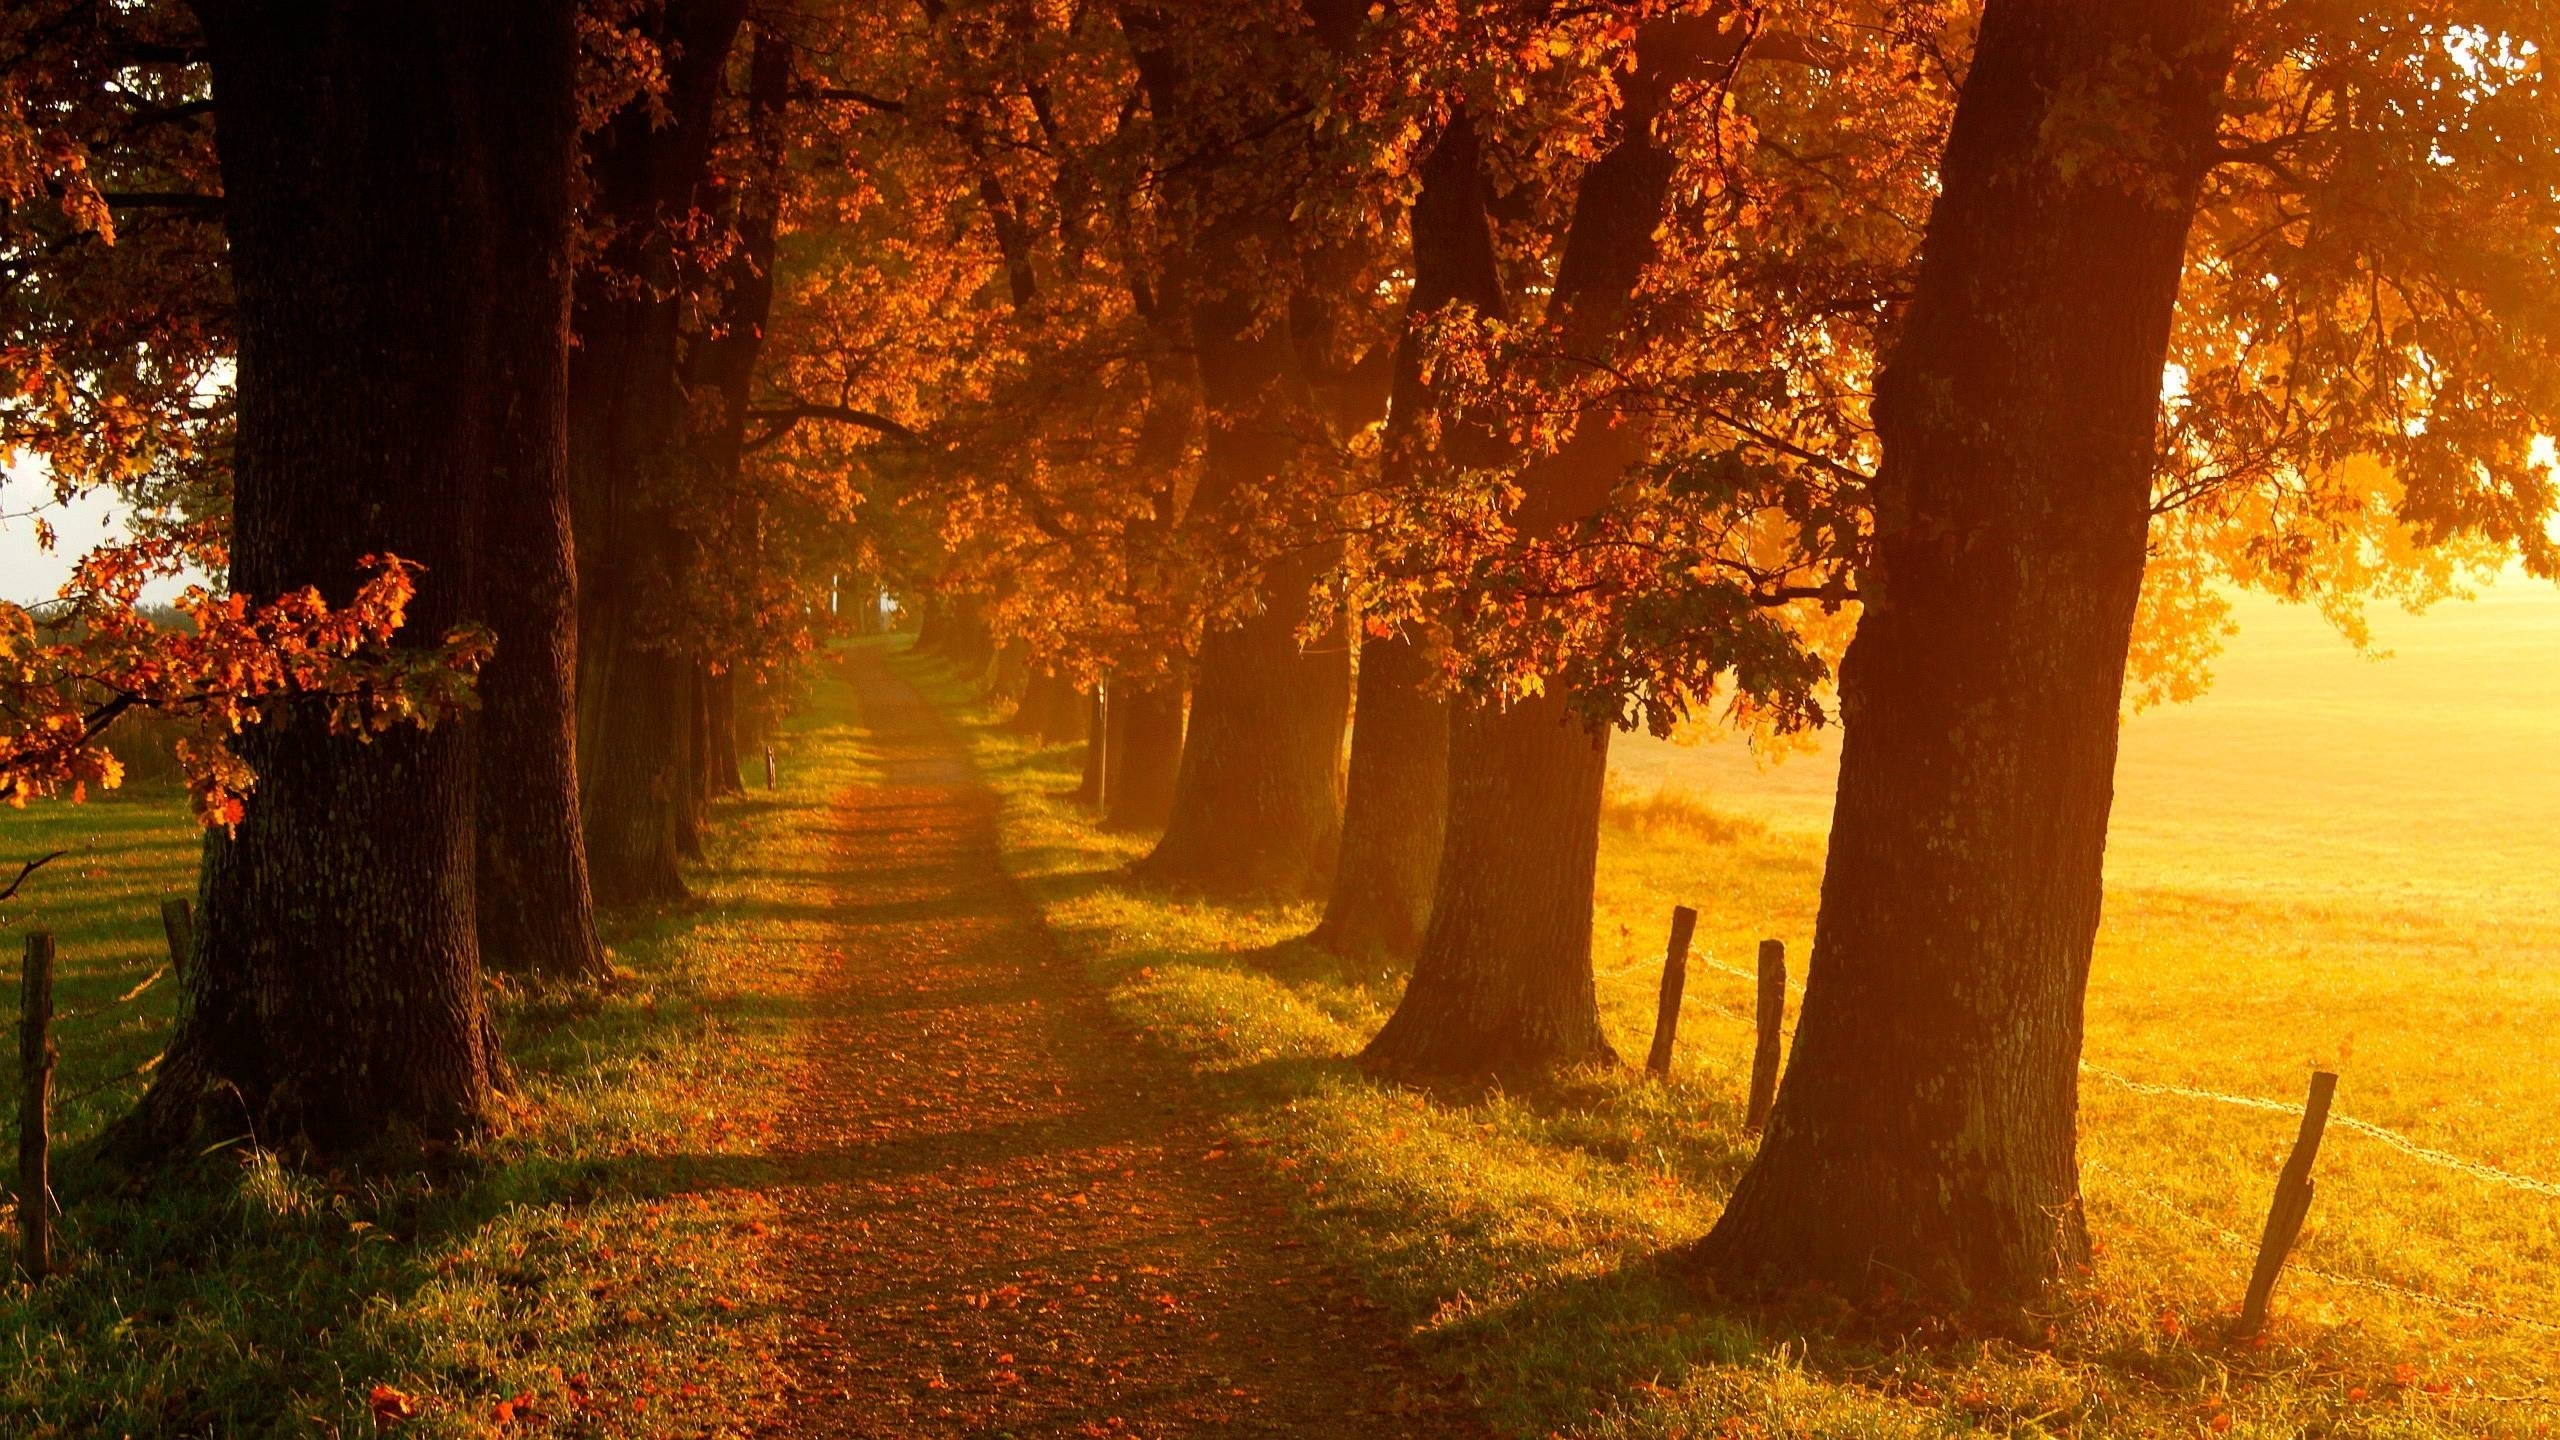 autumn landscape wallpapers - wallpaper cave